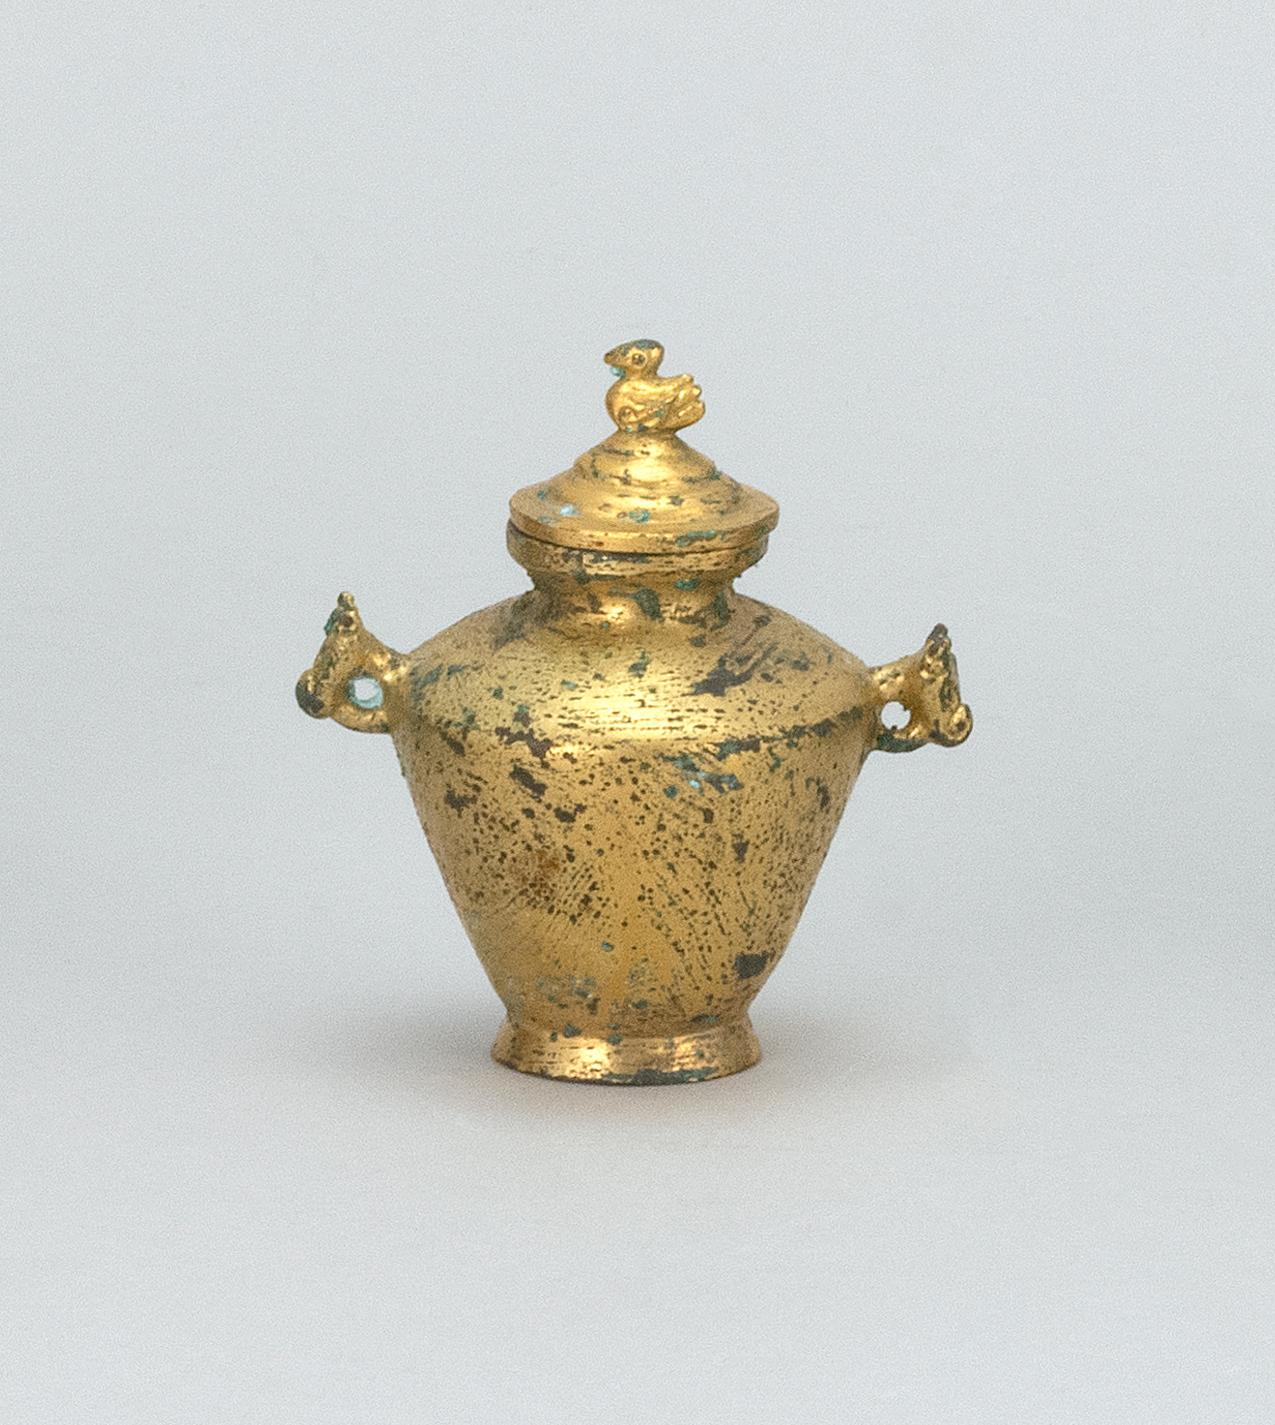 """MINIATURE CHINESE GILT-BRONZE COVERED VASE With animal-head handles and a bird finial. Height 3.25""""."""